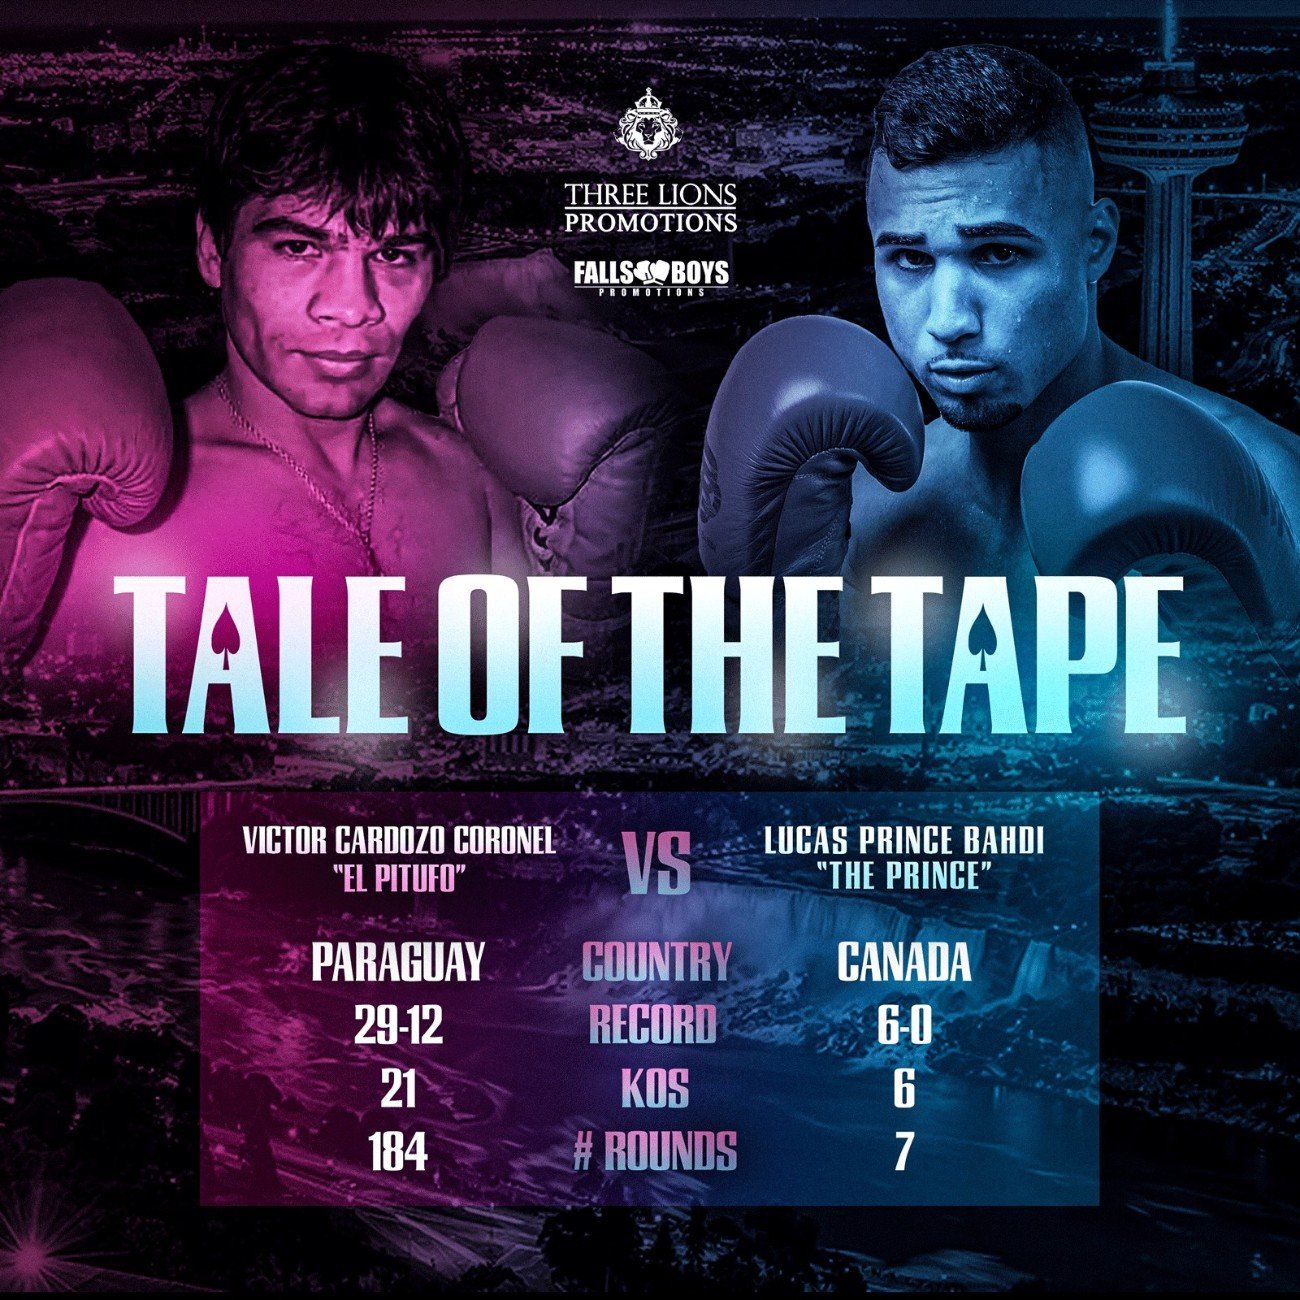 "Lucas Bahdi, Victor Cardozo - To be the best, a fighter must beat the best. This is the rationale behind the matchmaking for Lucas ""Prince"" Bahdi's (6-0-0, 6KOs) return on November 23 at the Sheraton on the Falls in his hometown of Niagara Falls, Ontario. Falls Boys Promotions (FBP) and Three Lions Promotions (TLP) are cranking Bahdi's opposition up a notch for his much anticipated homecoming, putting the former Canadian amateur champion against two-division Paraguayan champion Victor Cardozo (29-12-2, 21KOs) of Puerto Antequera for eight rounds or less."